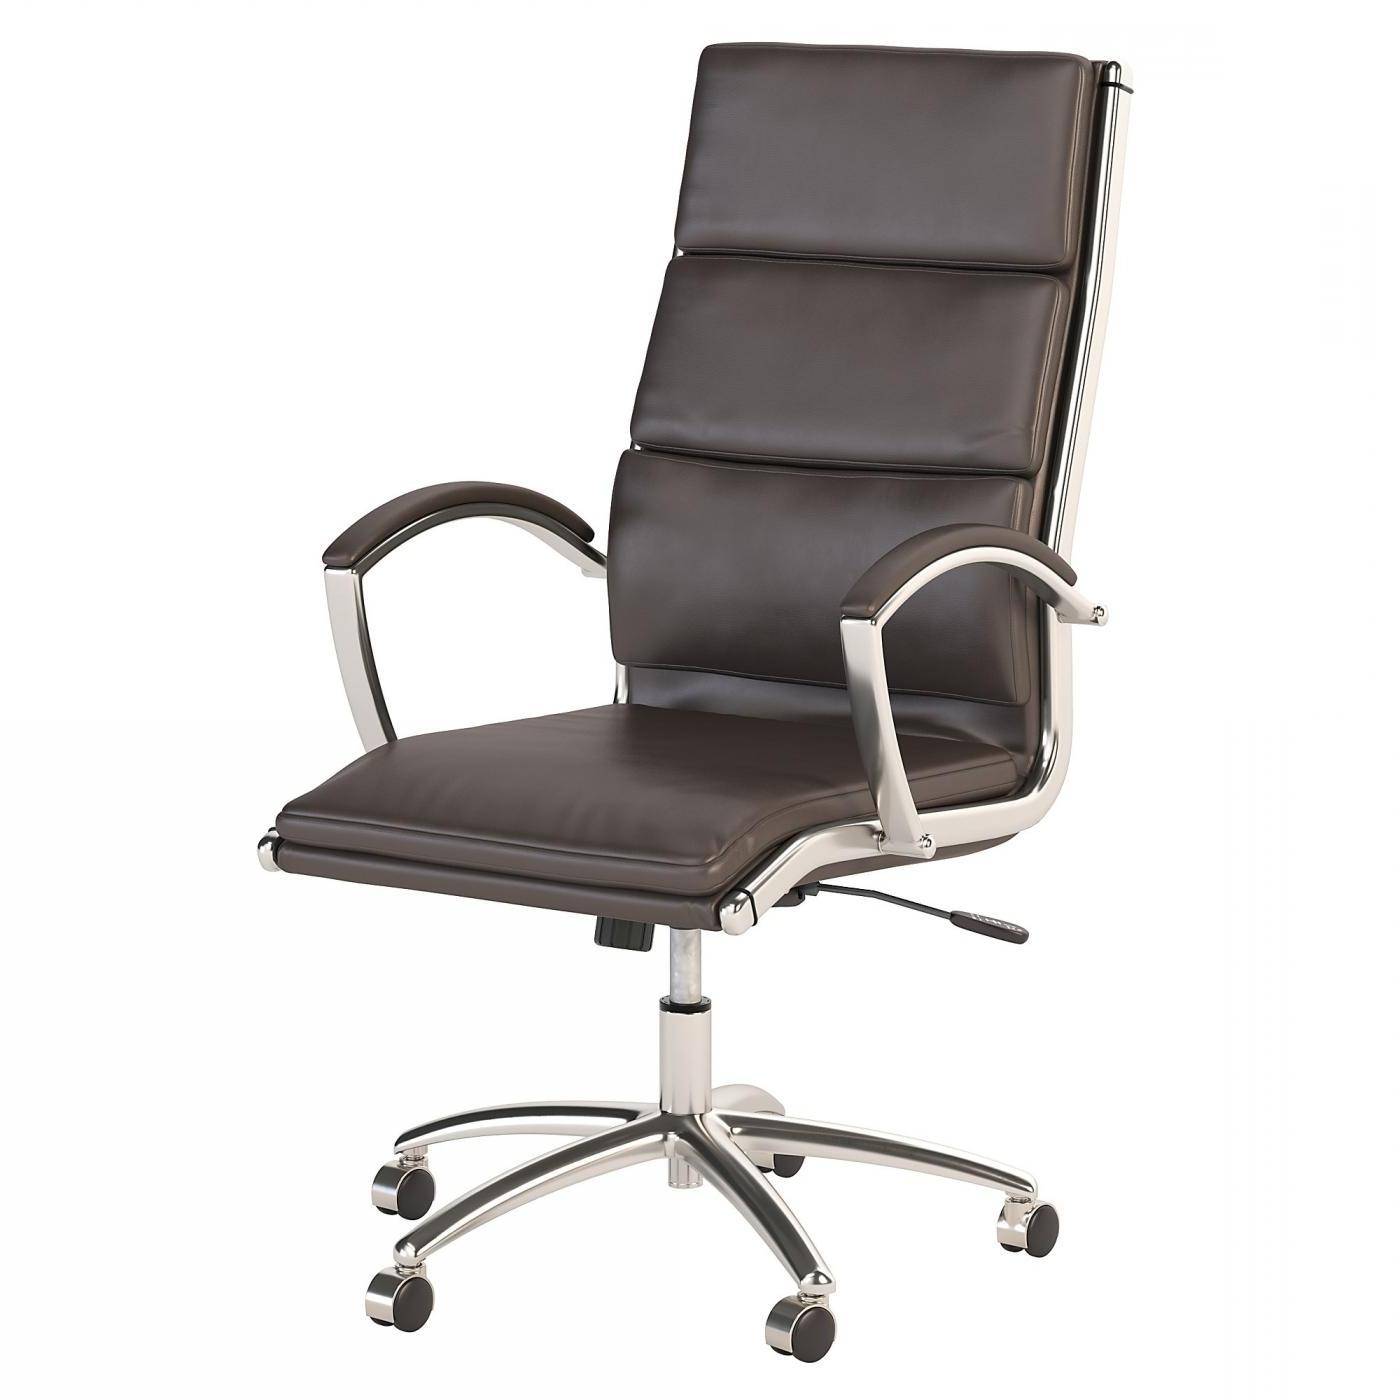 <font color=#c60><b>BUSH BUSINESS FURNITURE MODELO HIGH BACK LEATHER EXECUTIVE OFFICE CHAIR #EH-CH1701DBL-03. FREE SHIPPING:</font></b> </font></b></font></b>